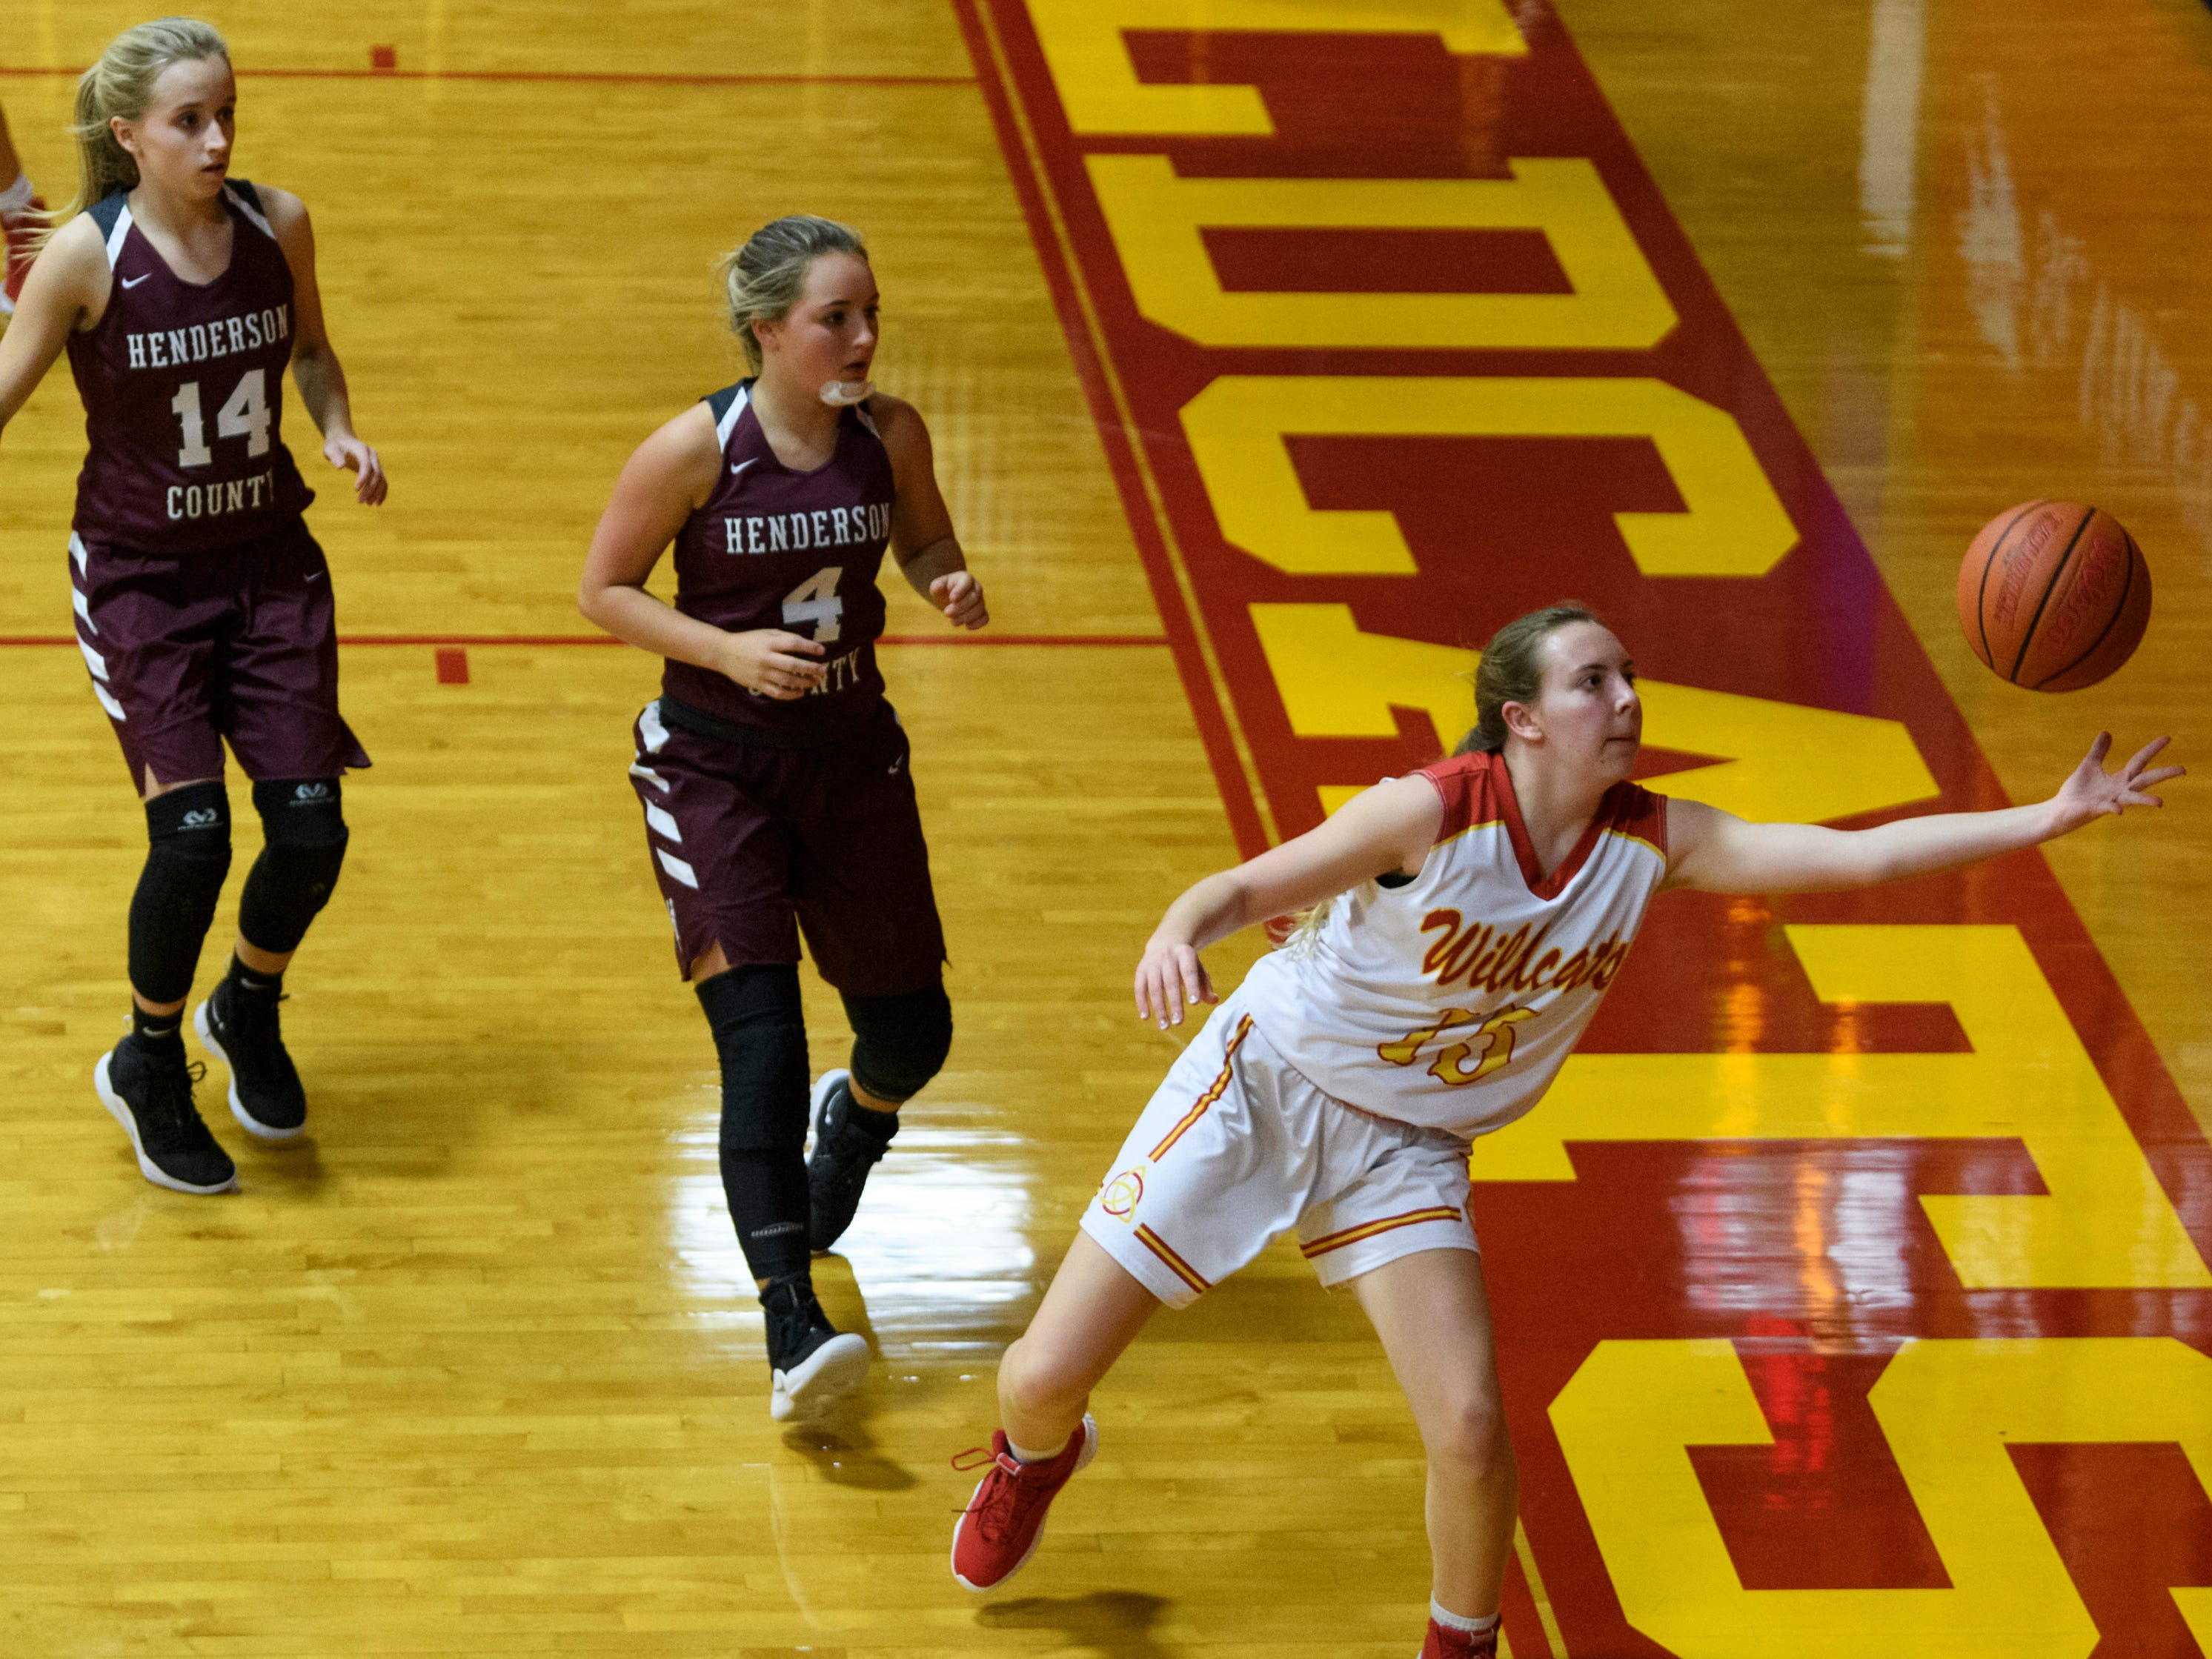 Mater Dei's Taylor Gerth (15) saves the ball from going out of bounds during the fourth quarter against the Henderson County Lady Colonels at Mater Dei High School in Evansville, Tuesday, Dec. 11, 2018. The Lady Colonels defeated the Wildcats 53-40.